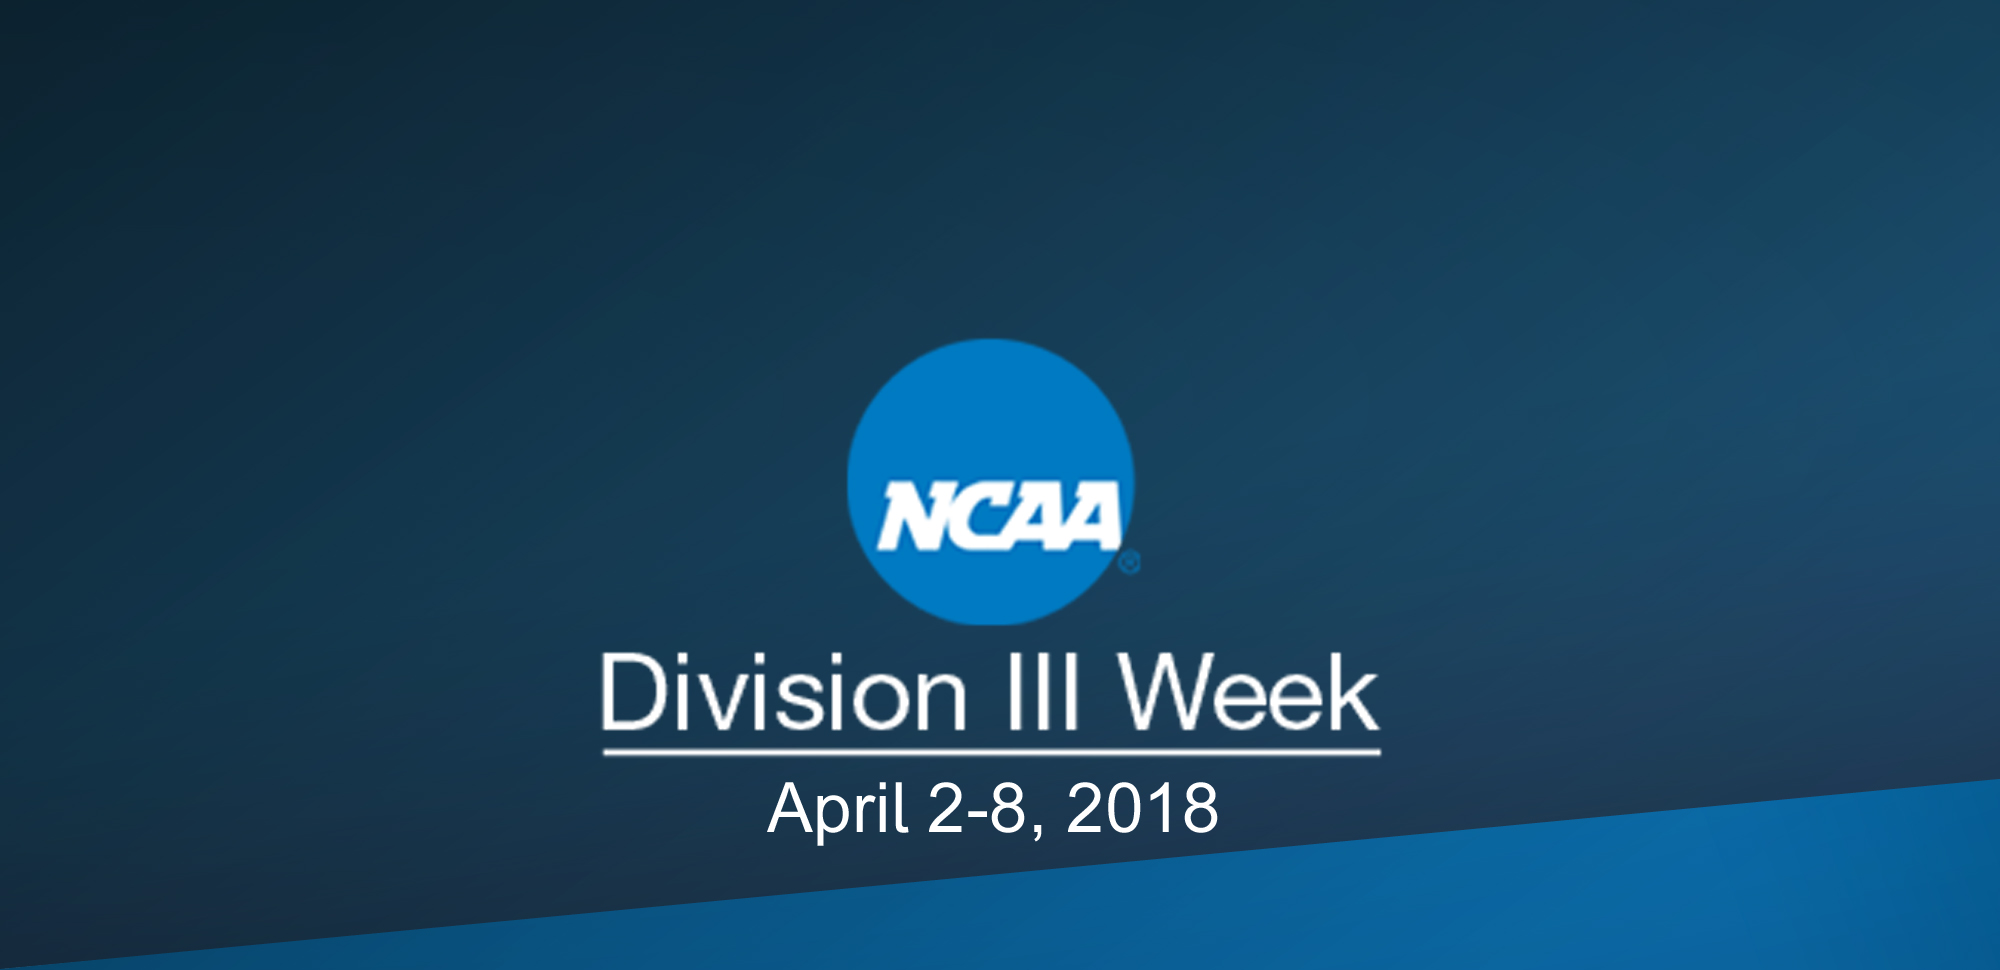 NCAA D3 Week: Our Experiences As A Division III Student-Athlete